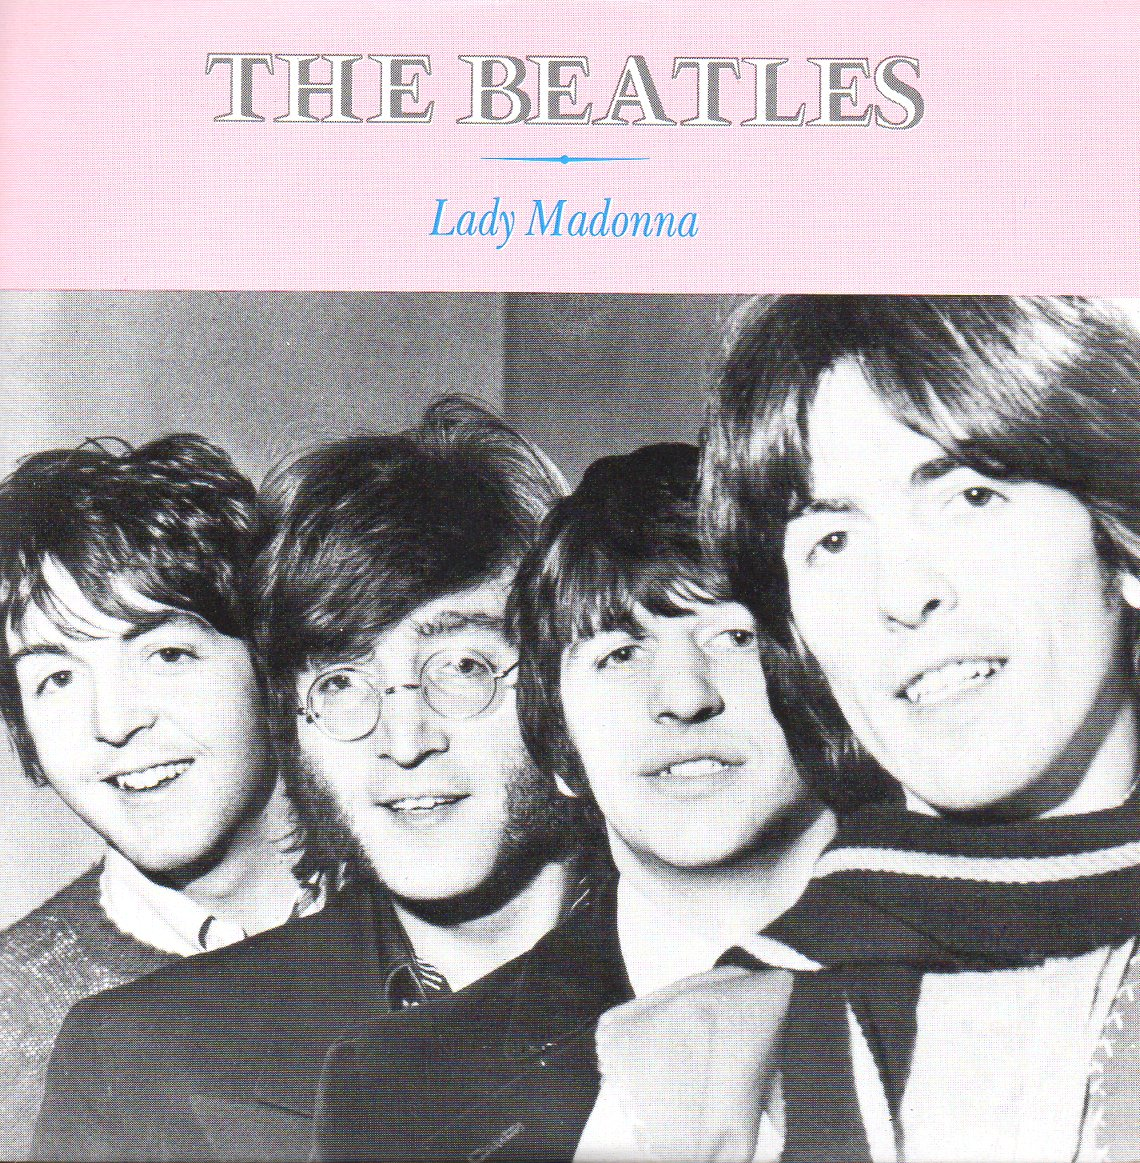 THE BEATLES - Lady Madonna 2-Track CARD SLEEVE - CD single